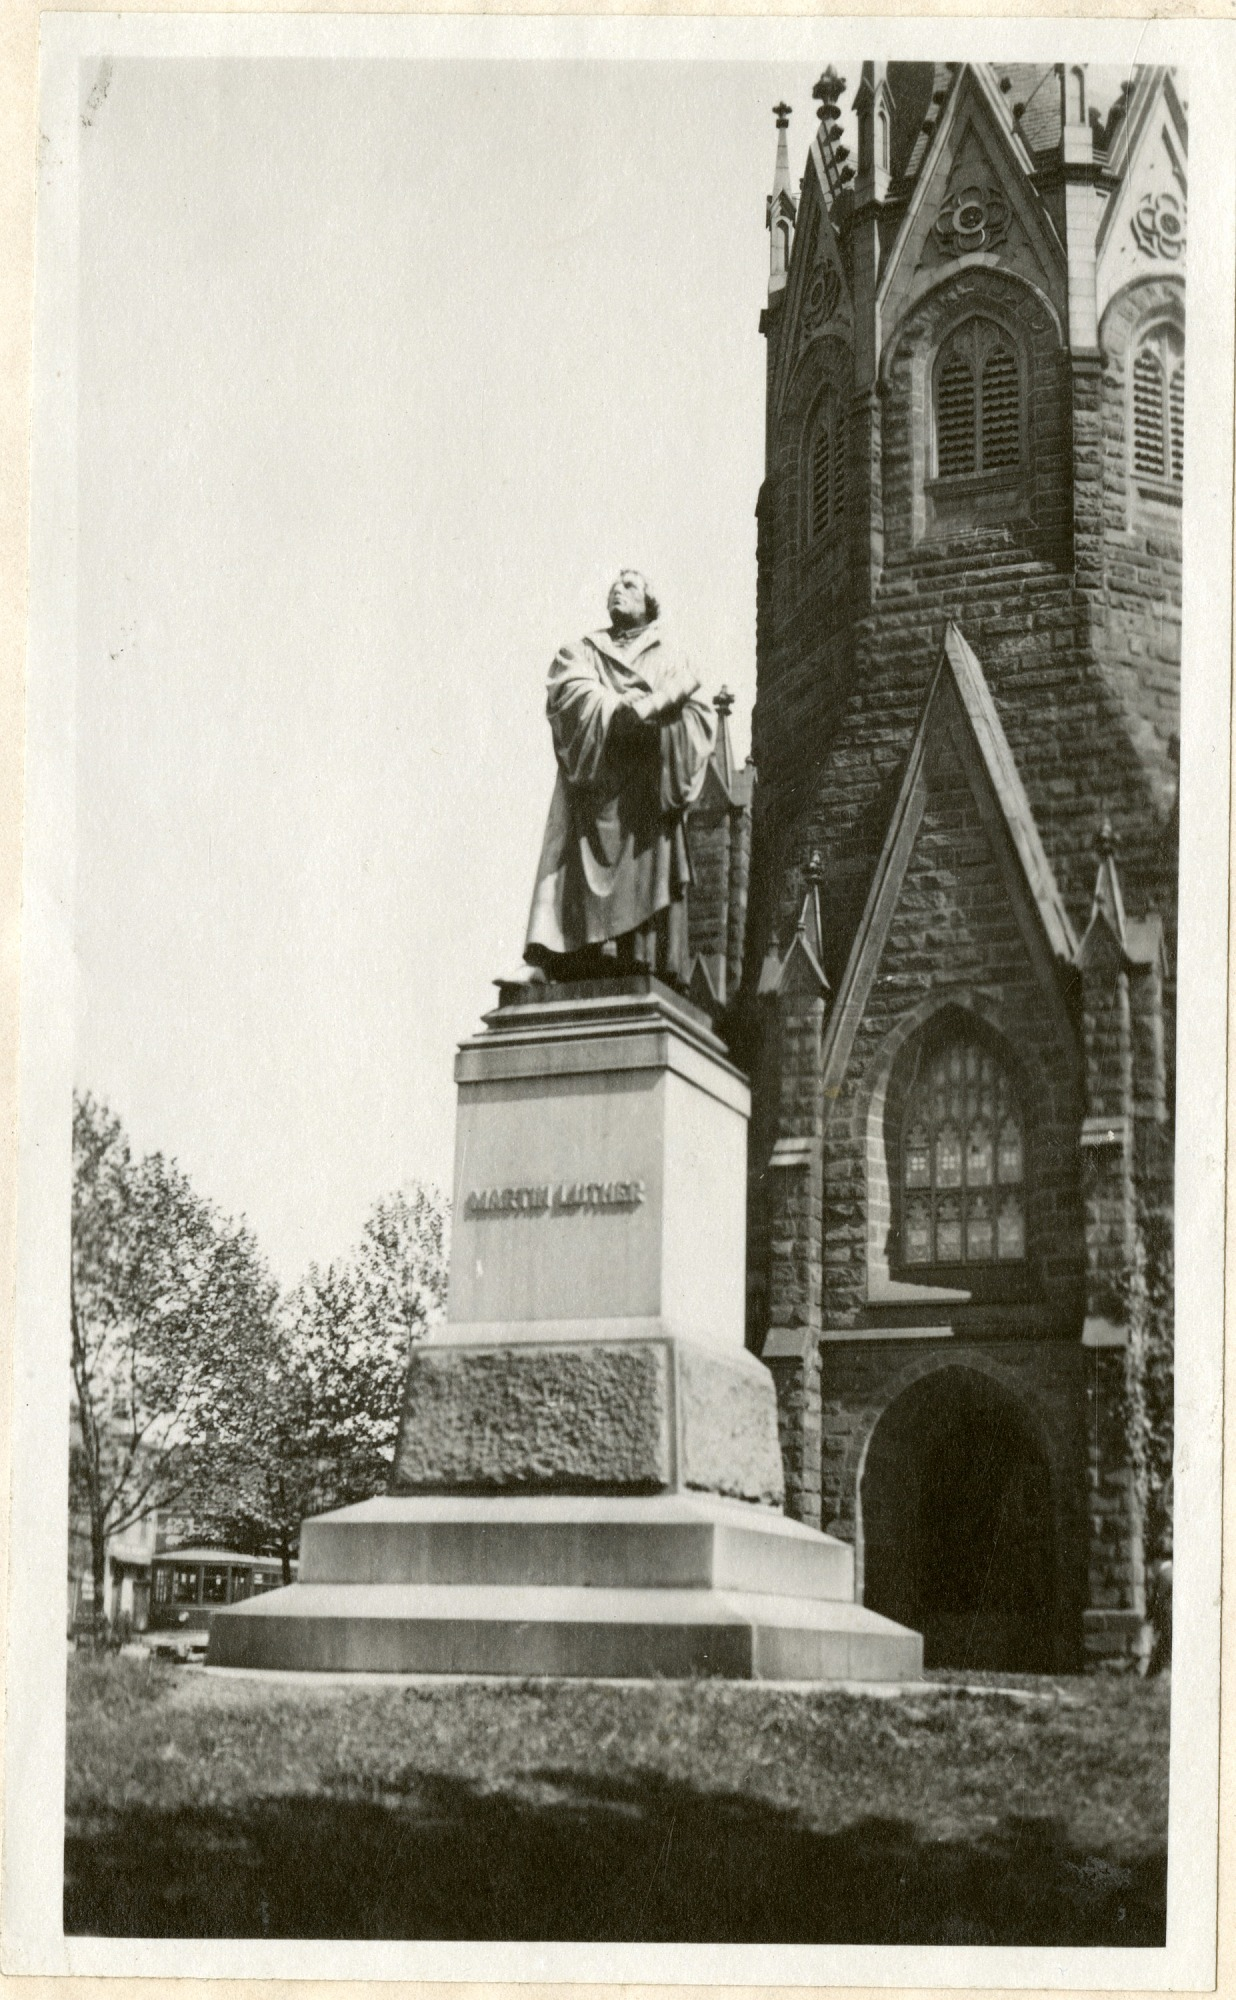 Statue of Martin Luther, 1919, Smithsonian Institution Archives, SIA RU007355 [SIA2010-2033].